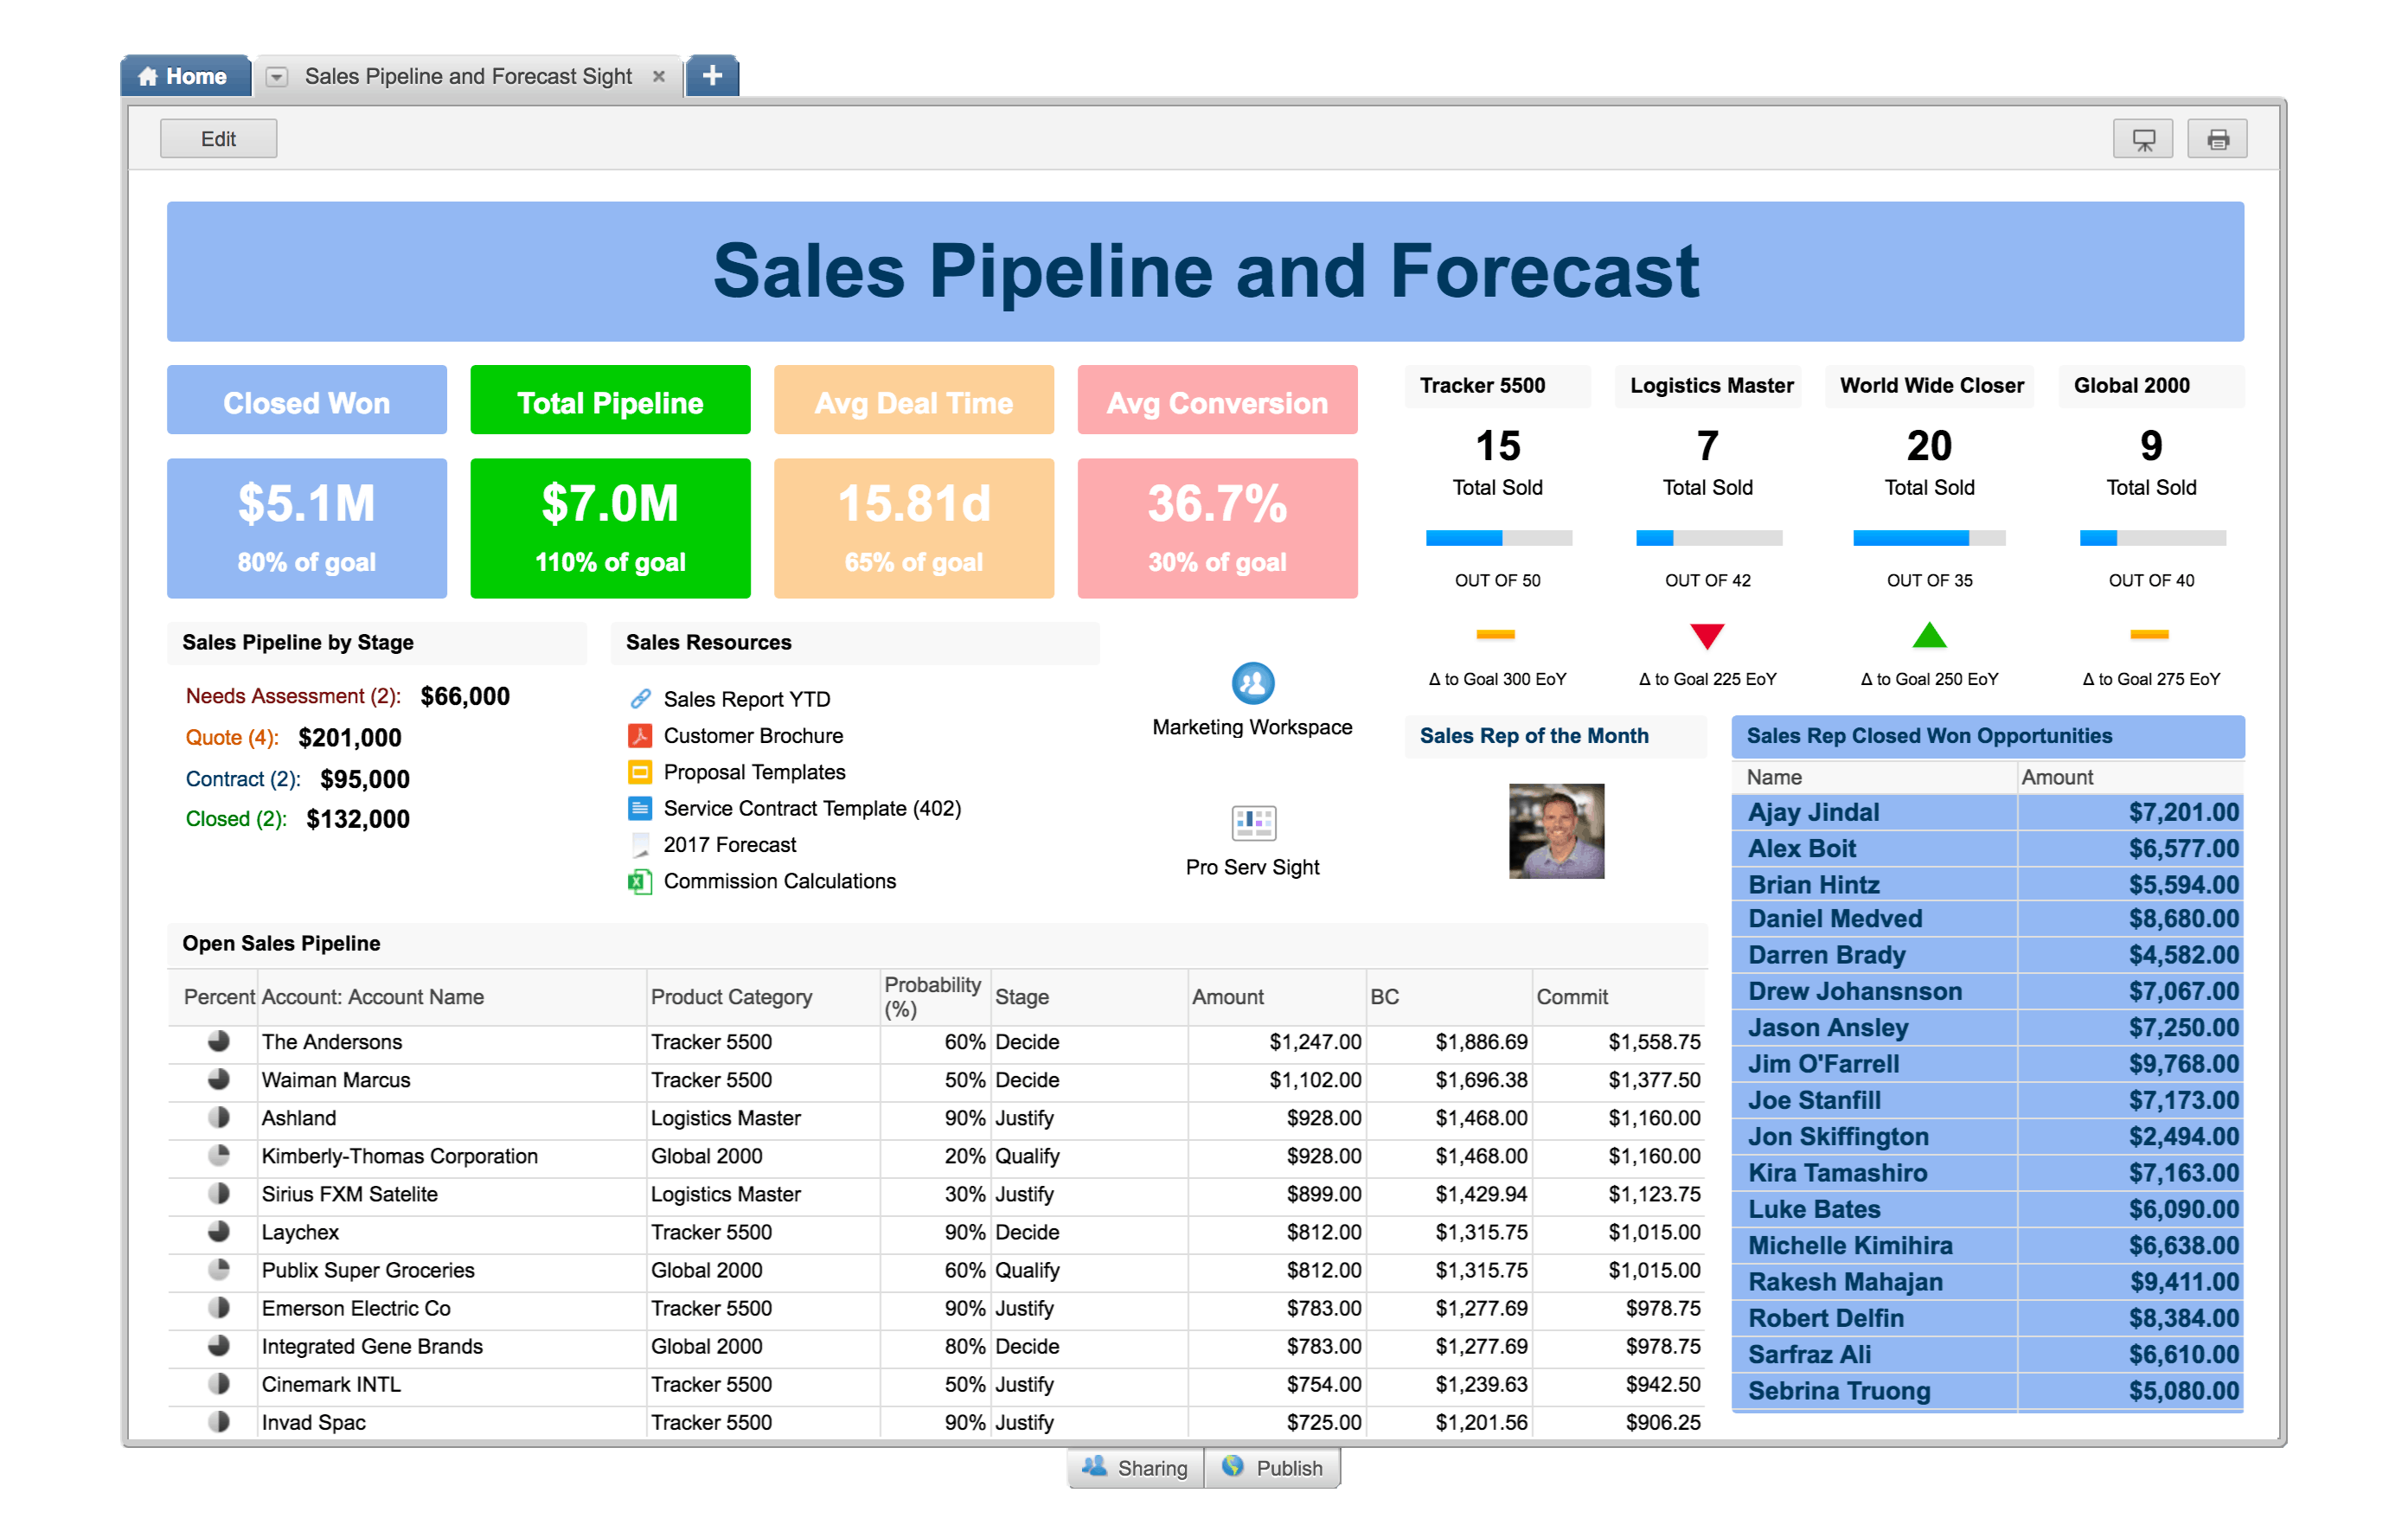 Sales Pipeline Review and Forecast Sight